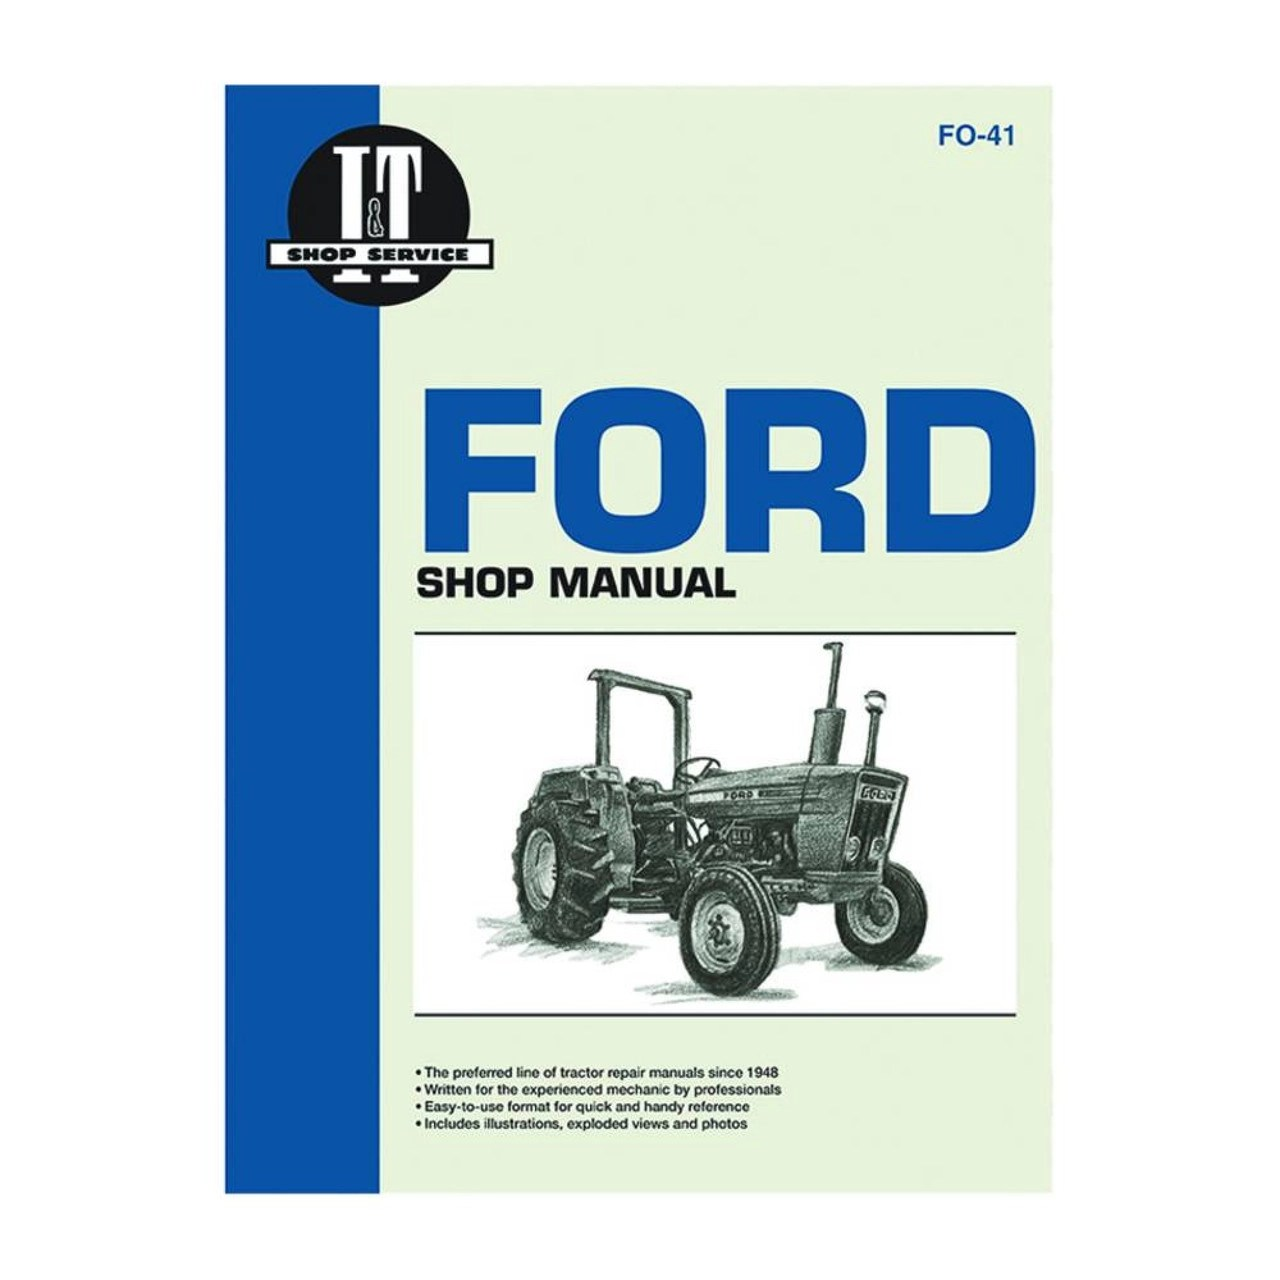 service manual ford new holland tractor fo 41 2310 2600 2610 3600 ford 4600 tractor parts diagram [ 1280 x 1280 Pixel ]